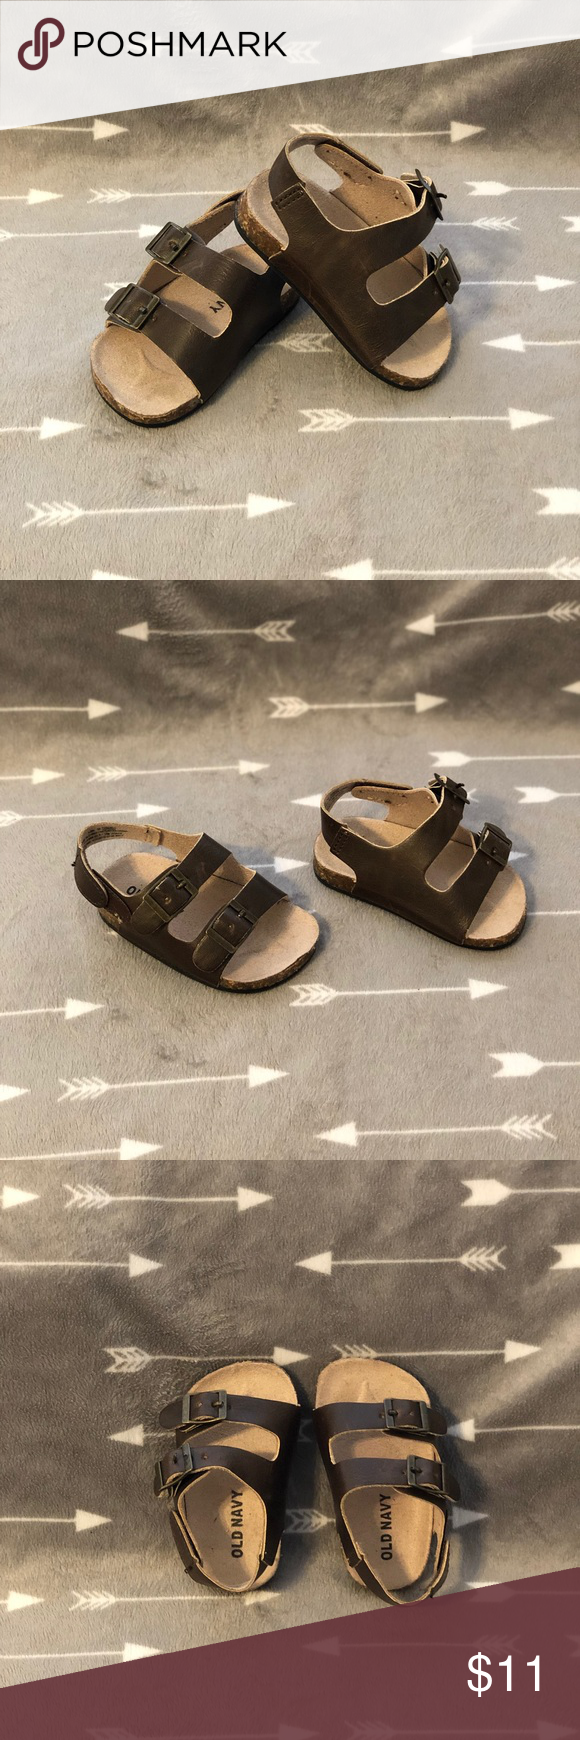 Old Navy Birkenstock Style Baby Sandals Size 2 Nwt Birkenstock Style Baby Sandals Birkenstock